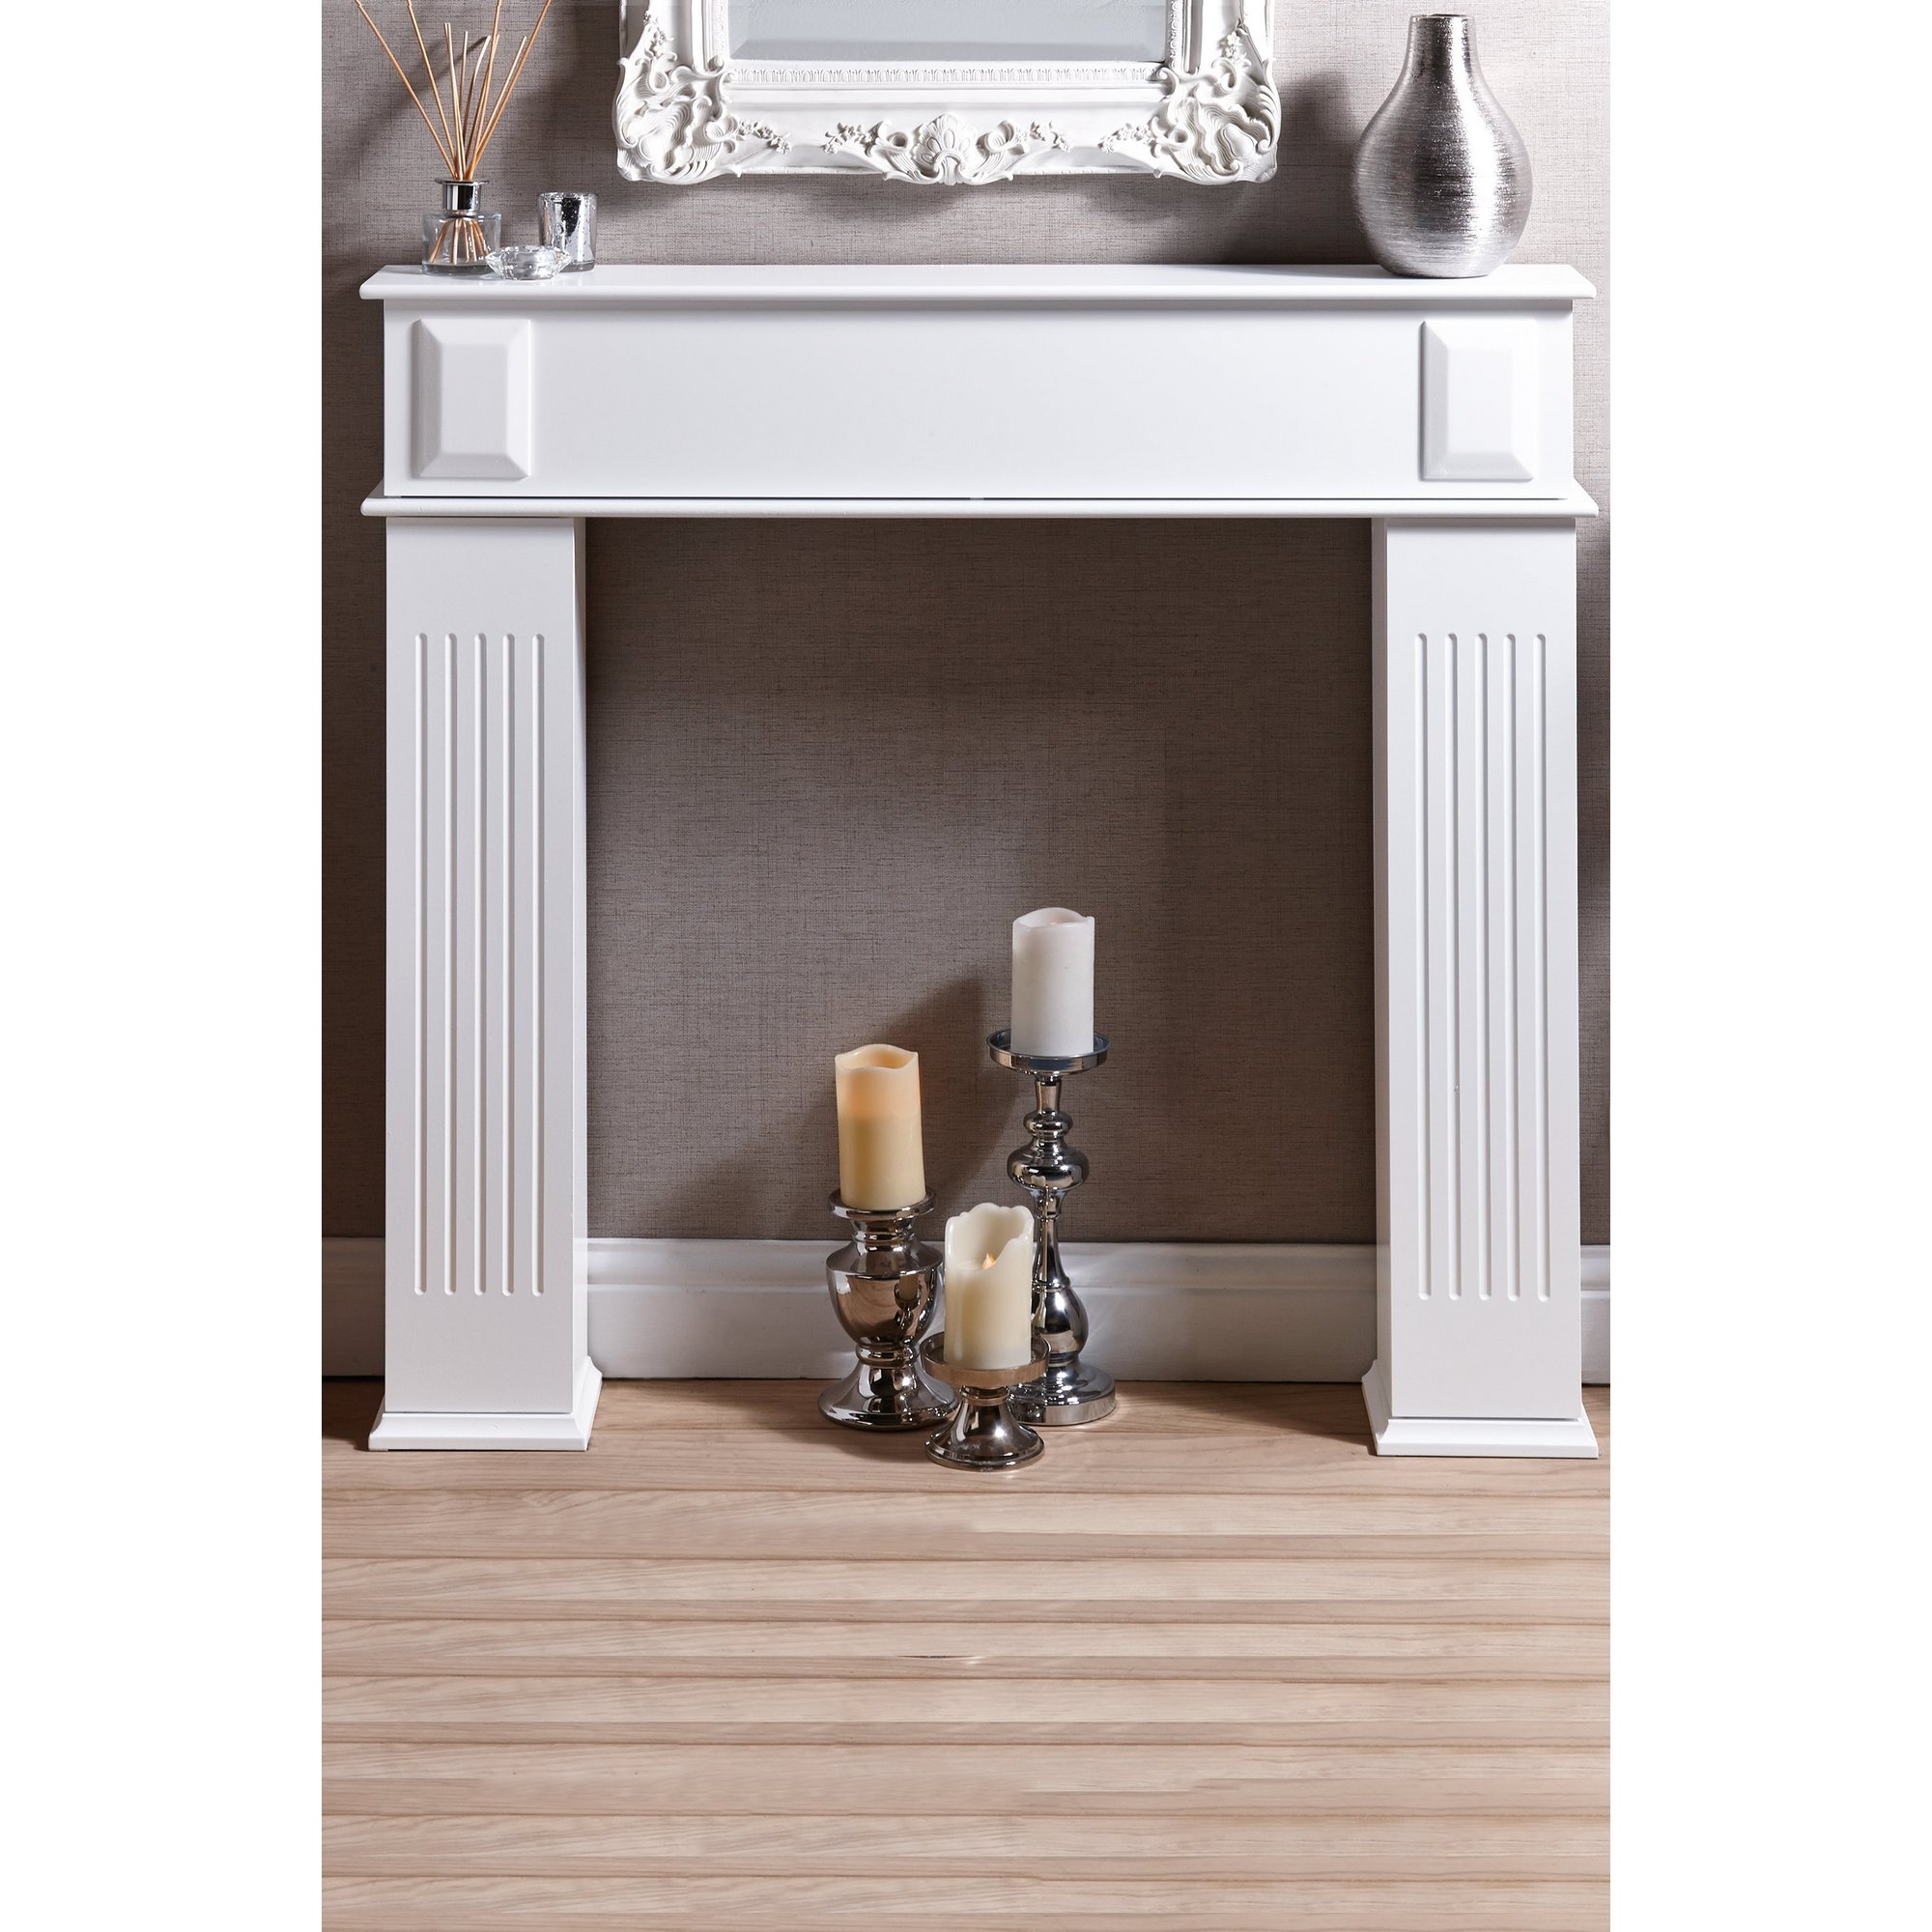 Image of Storage Fire Surround